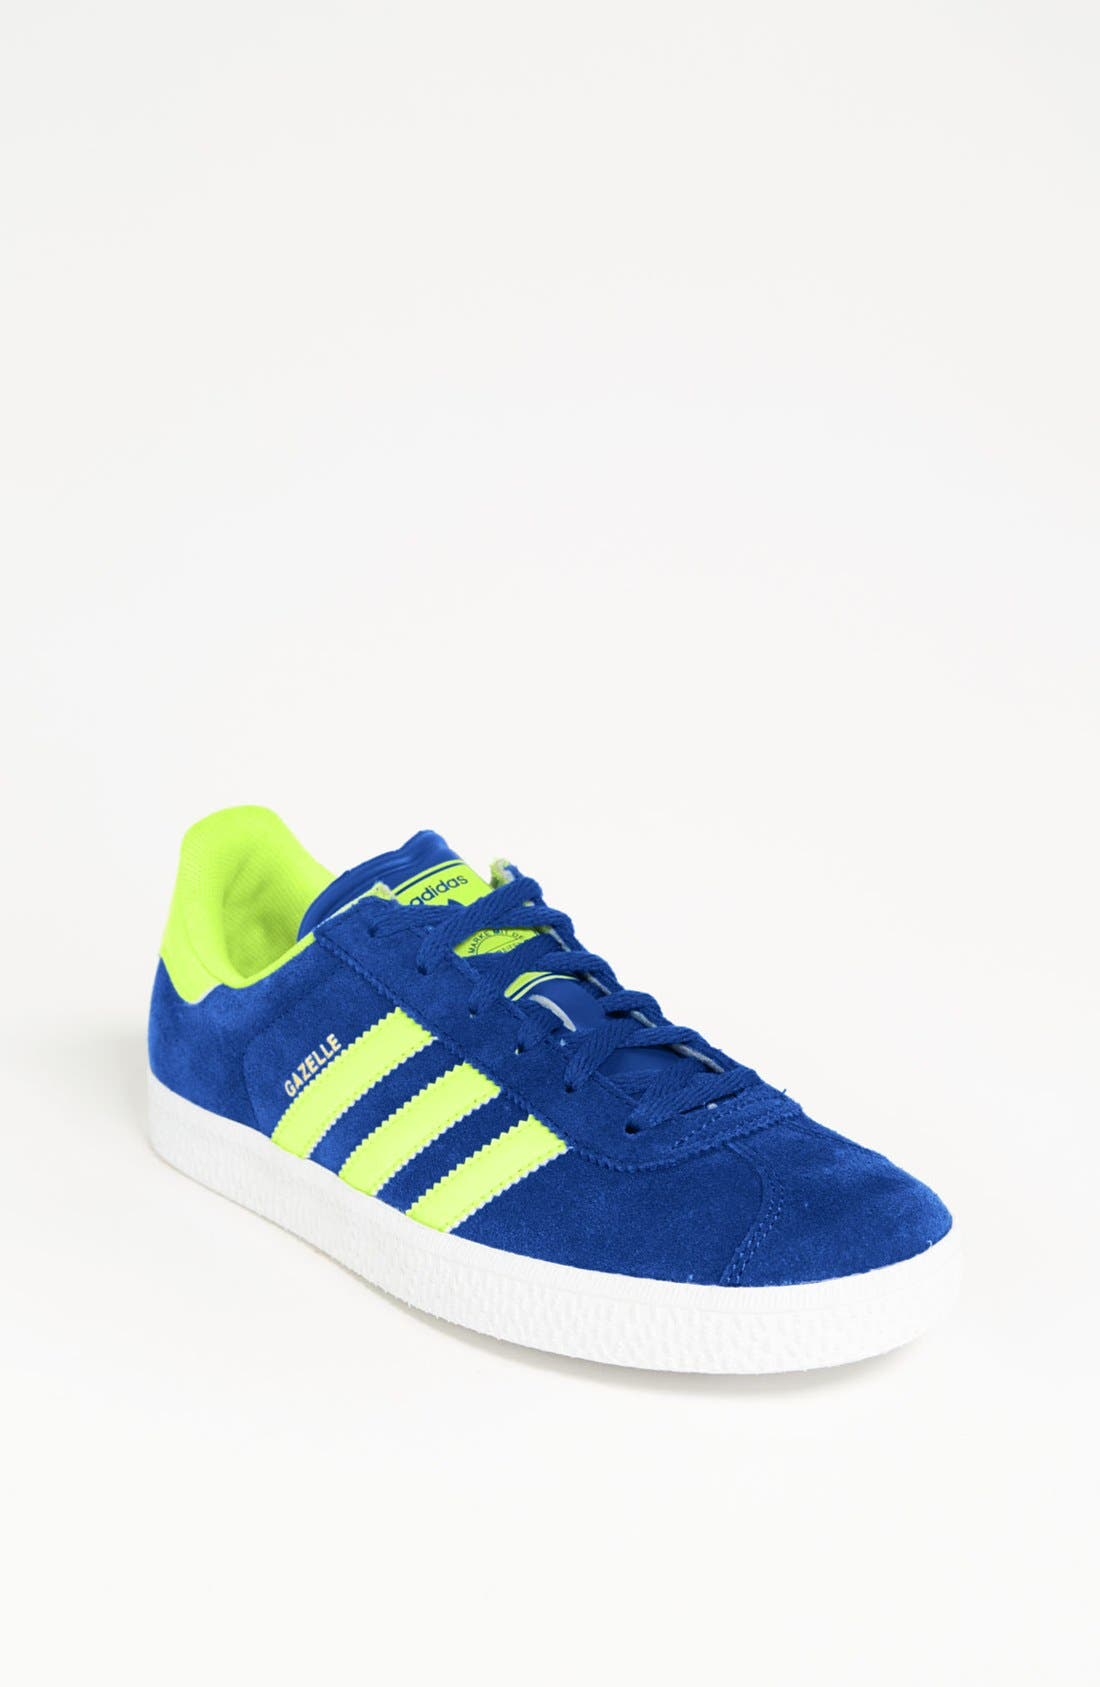 Alternate Image 1 Selected - adidas 'Gazelle' Sneaker (Big Kid)